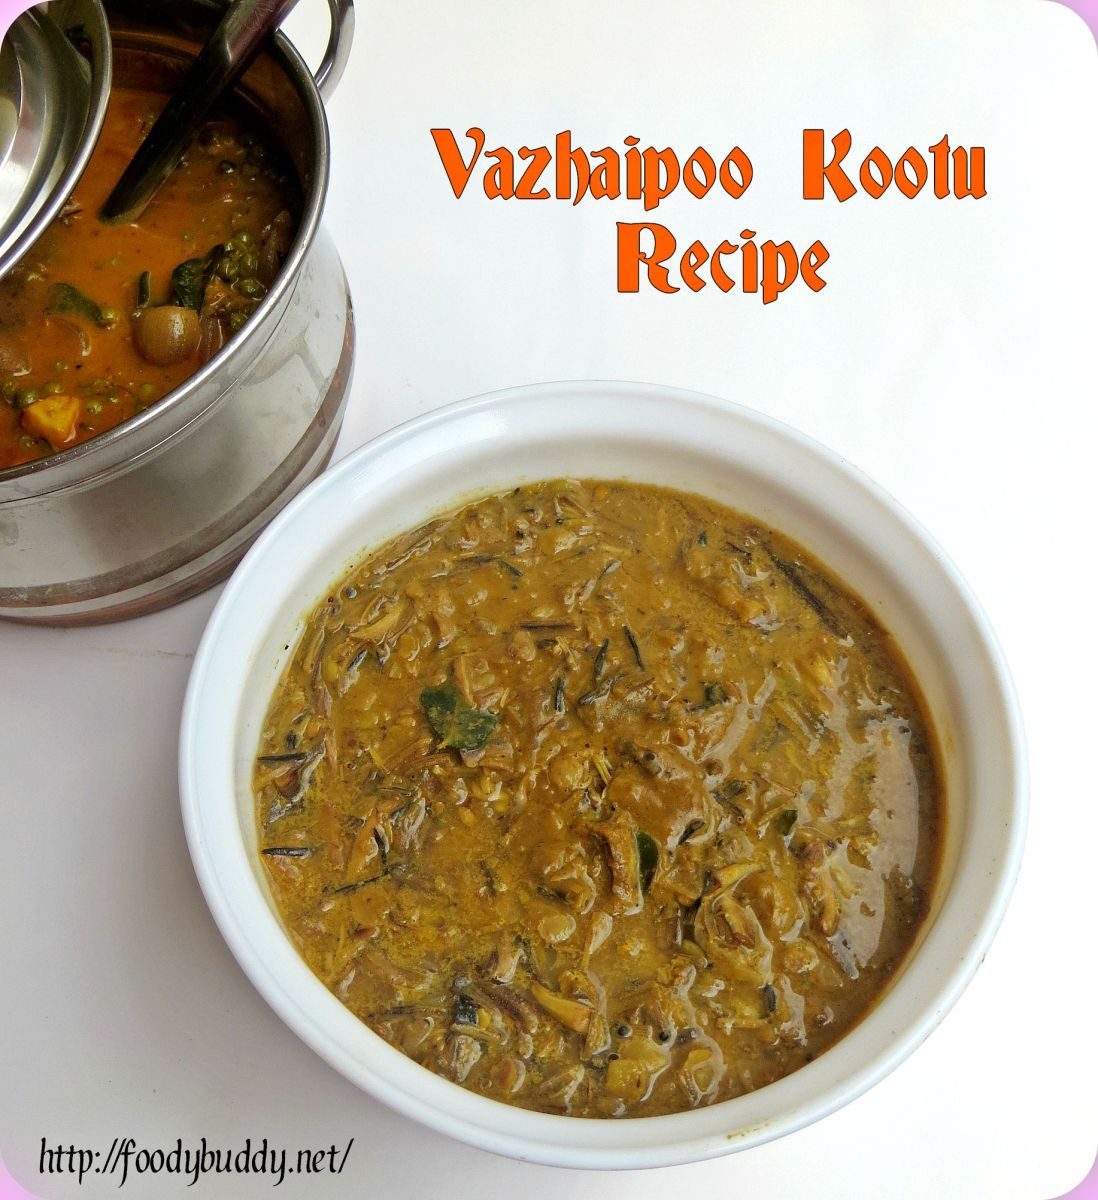 Vazhaipoo Kootu Recipe without coconut